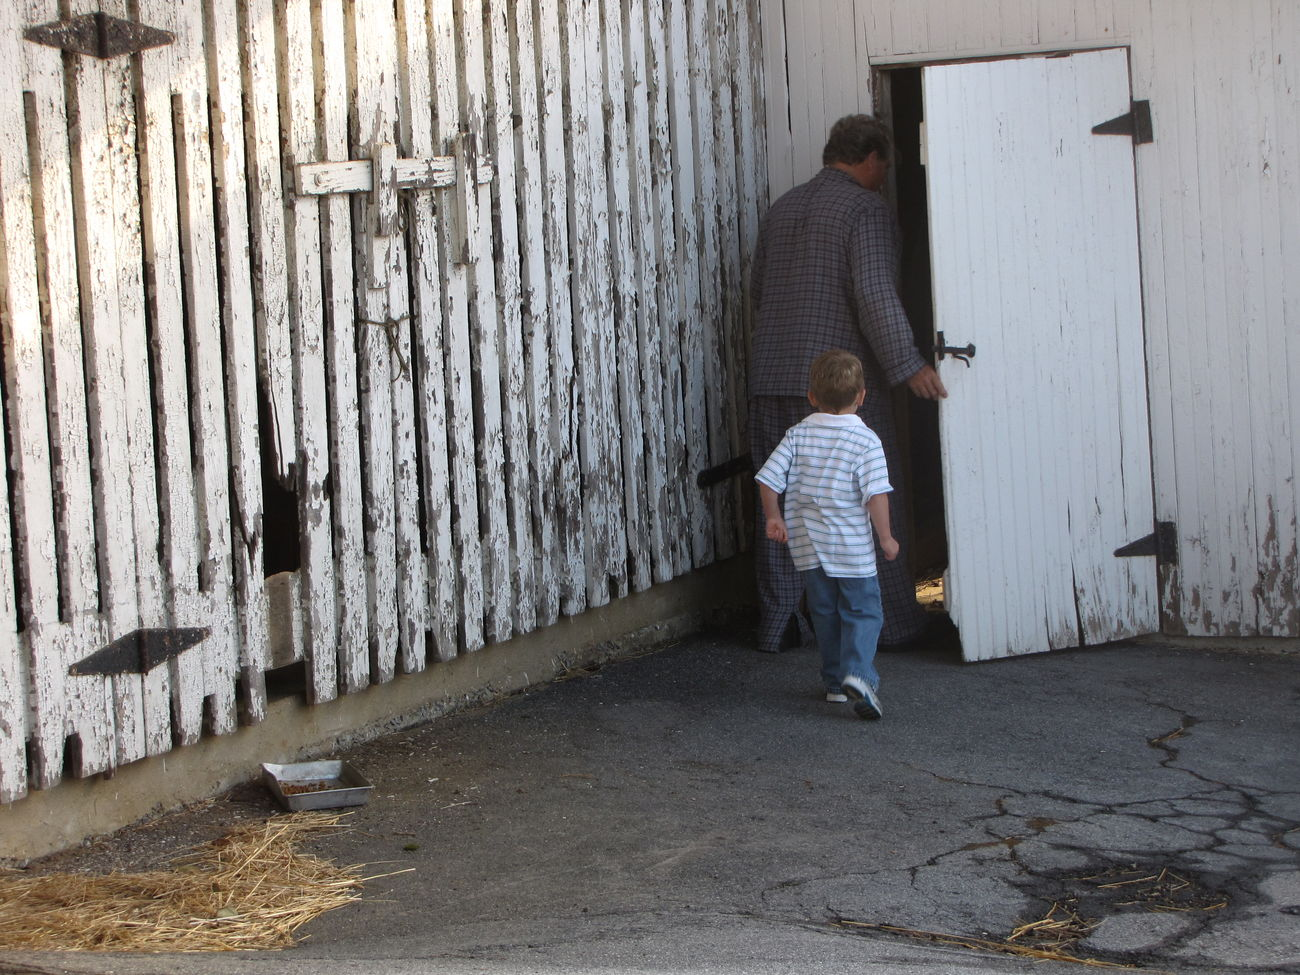 Feeding the animals Barn Barn Door Boy Casual Clothing Chores Cracks Door Doorway Early Morning Farm Farm Life Fatherhood Moments Feeding Animals Gate Hay Hinges Man Old Open Open Door Peeling Paint Pennsylvania People Sunlight White Barn